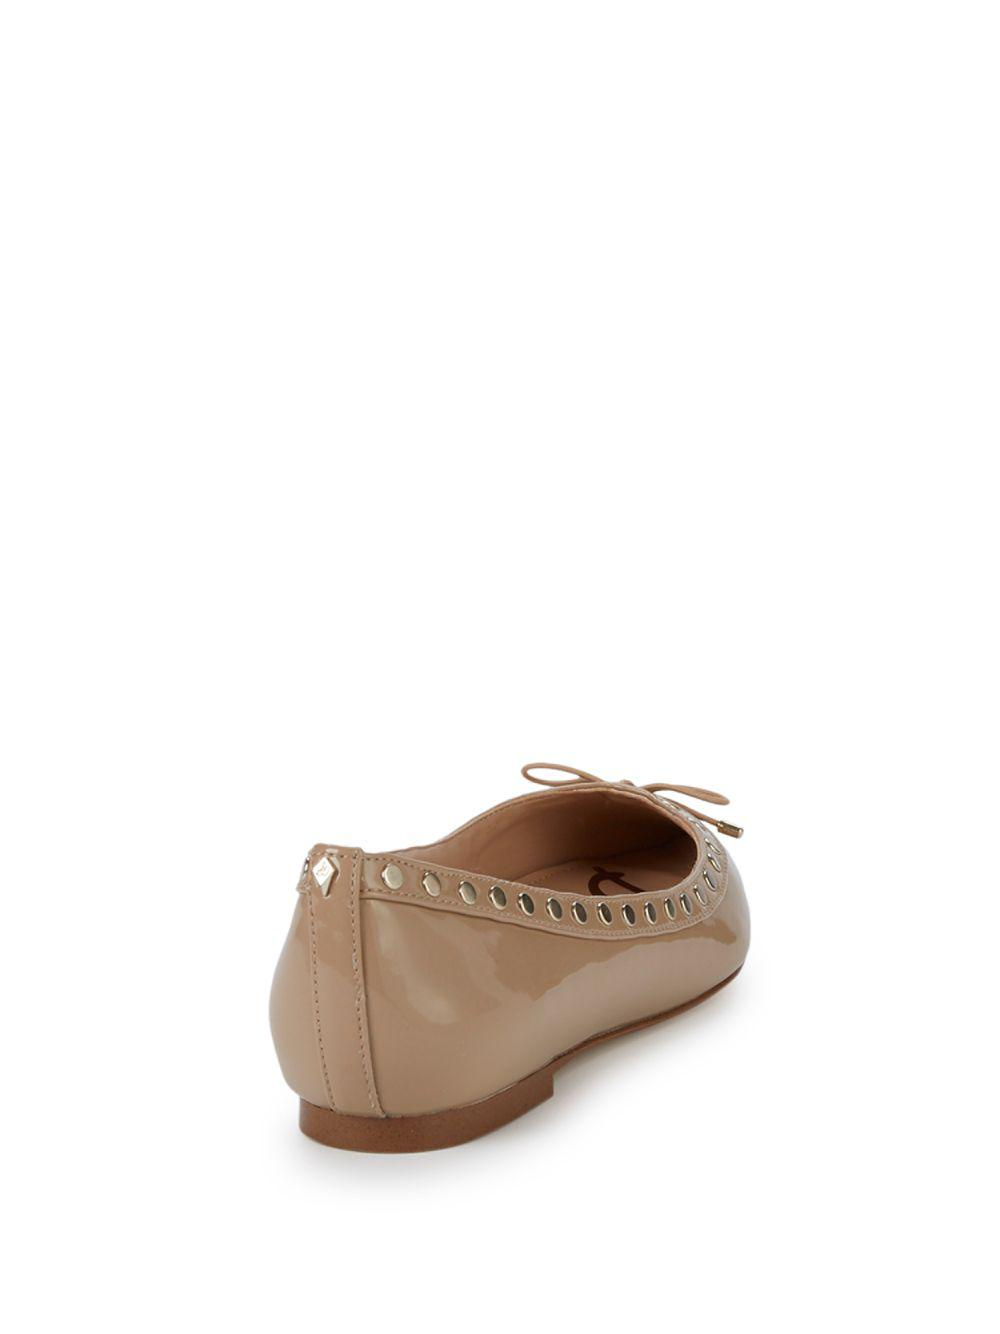 86a91c40d6d724 Lyst - Sam Edelman Ralf Point Leather Flats in Natural